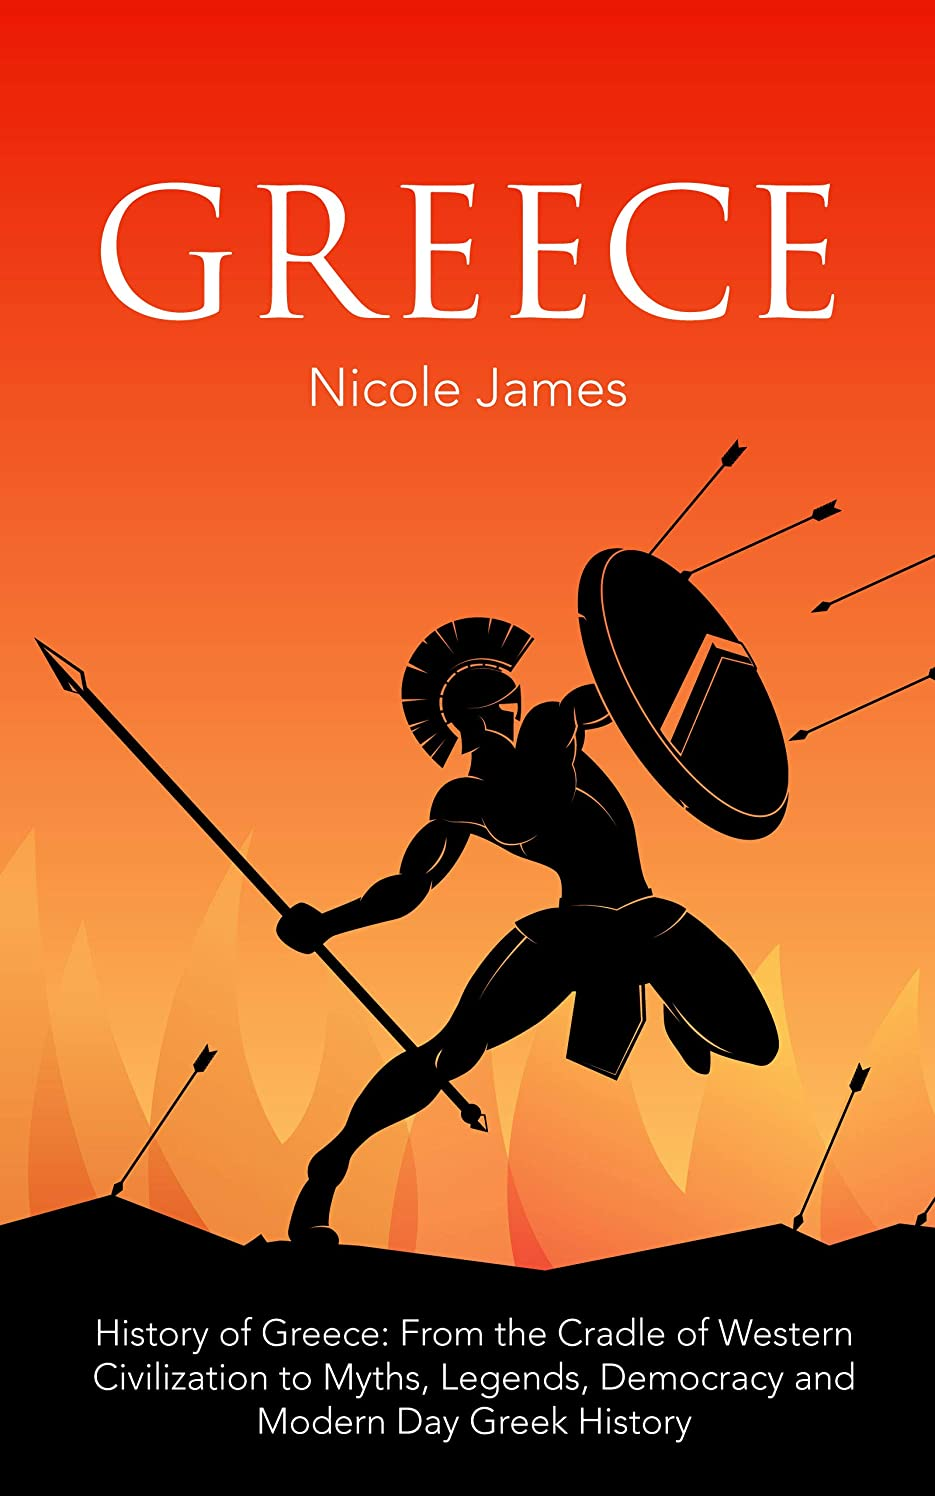 バーターコンピューターを使用するおばあさんHistory of Greece: History of Greece: From the Cradle of Western Civilization to Myths, Legends, Democracy and Modern Day Greek History (English Edition)